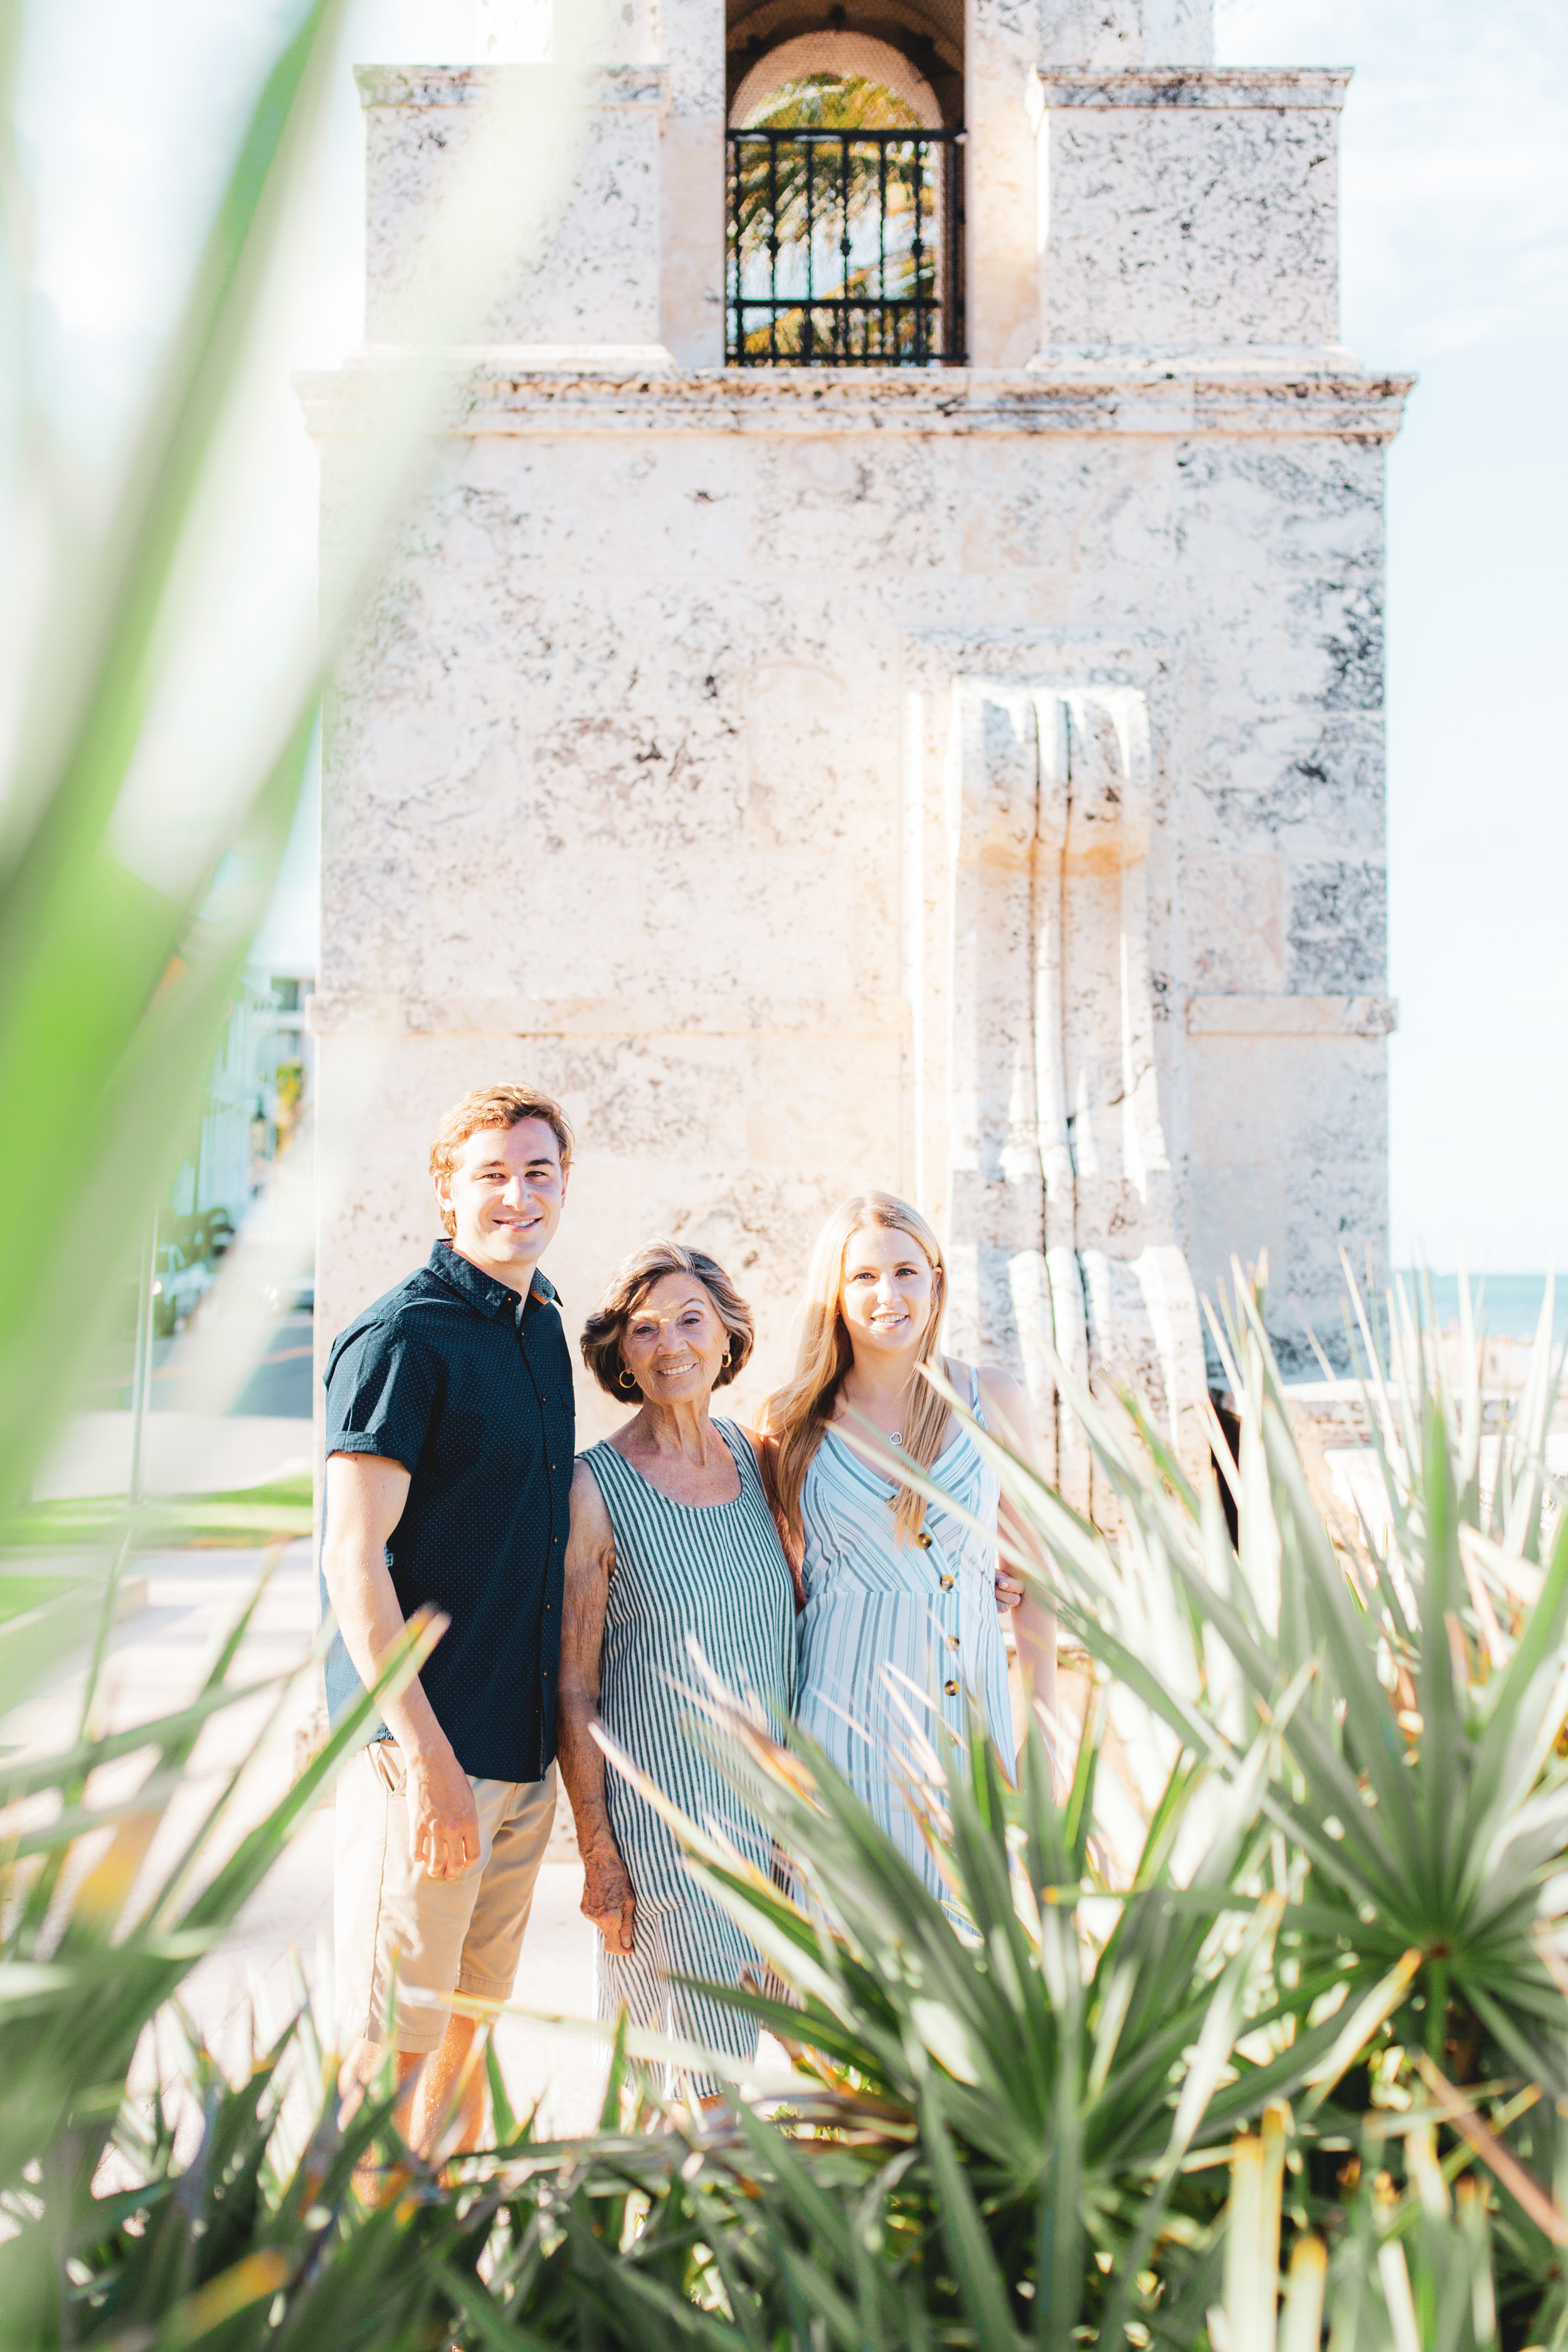 south florida palm beach family vacation kelilina photography 20190821180151-1.jpg